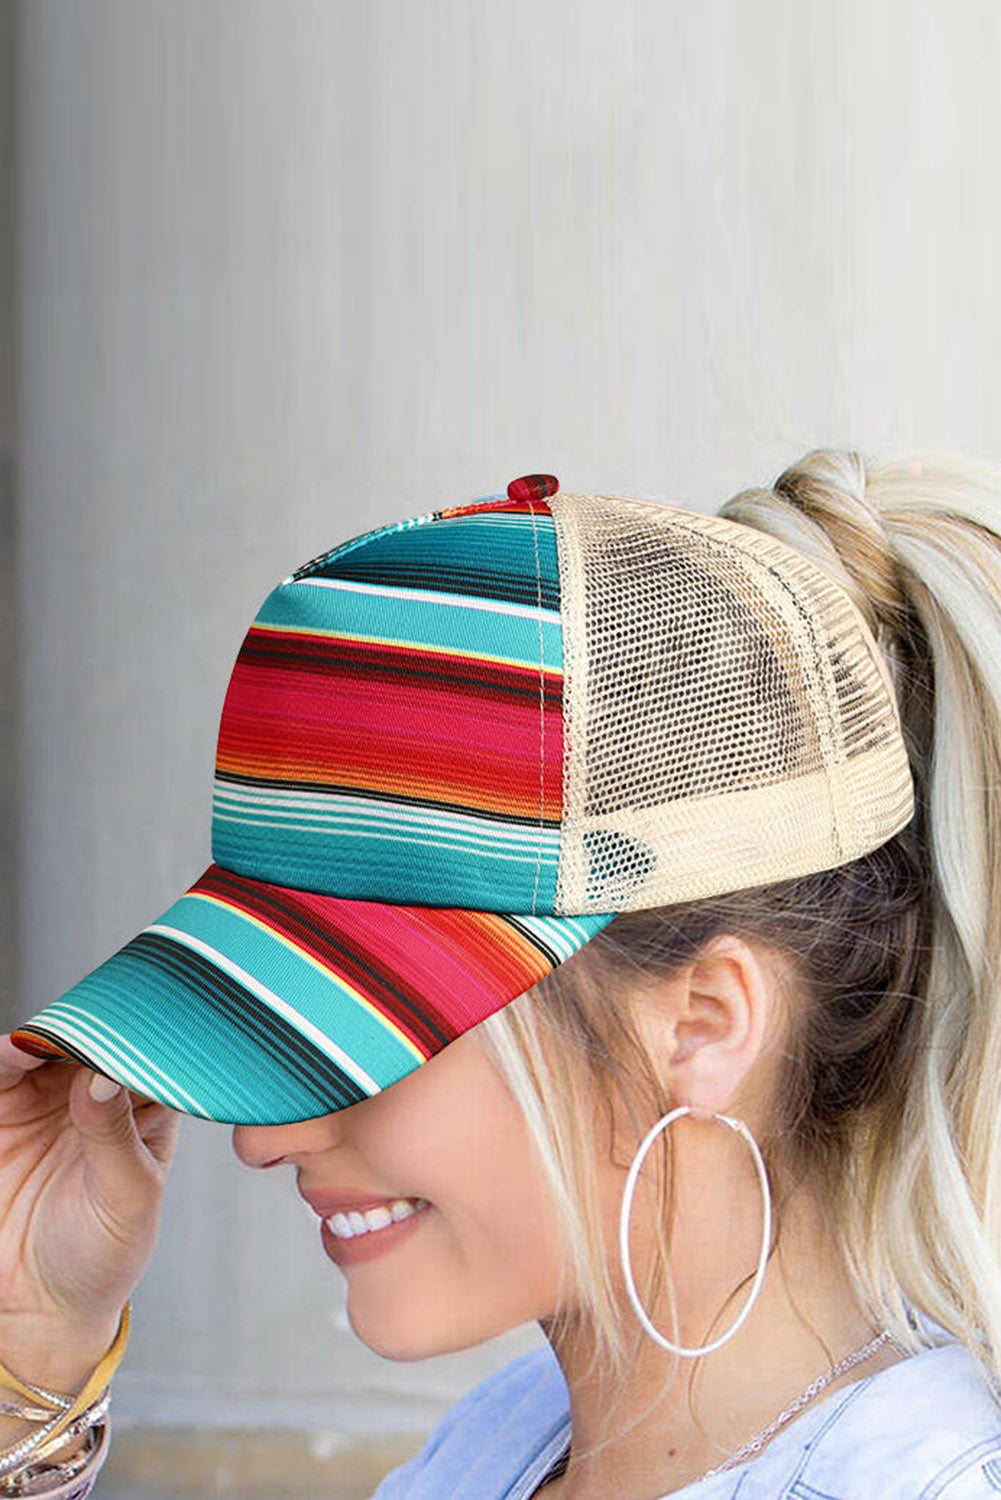 Rainbow Striped Criss-Cross Mesh Splicing Baseball Cap Hats & Caps Discount Designer Fashion Clothes Shoes Bags Women Men Kids Children Black Owned Business